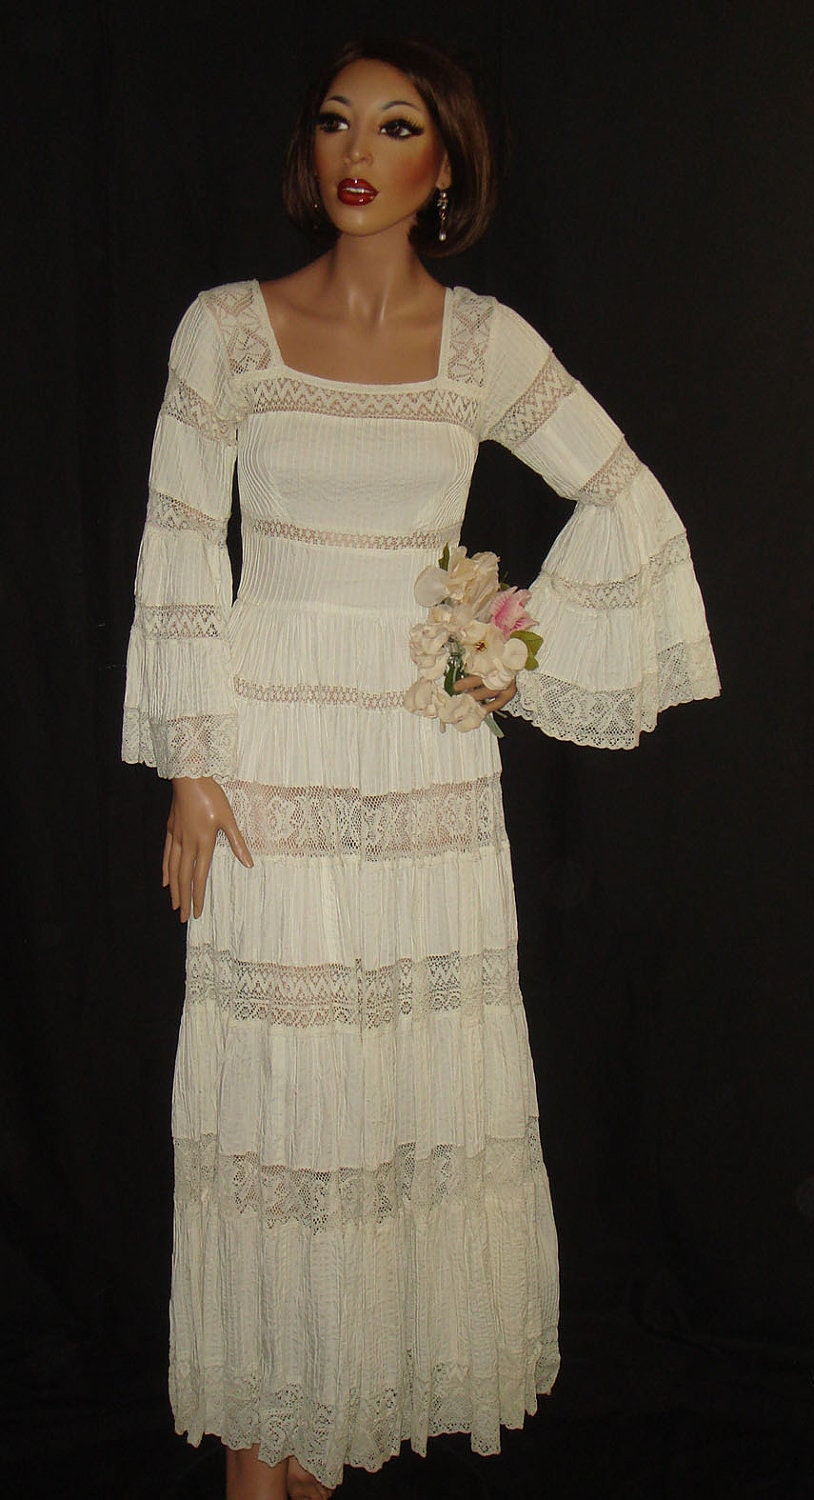 Bauer M Bel vintage 1960s white wedding dress with by snapitupvintage